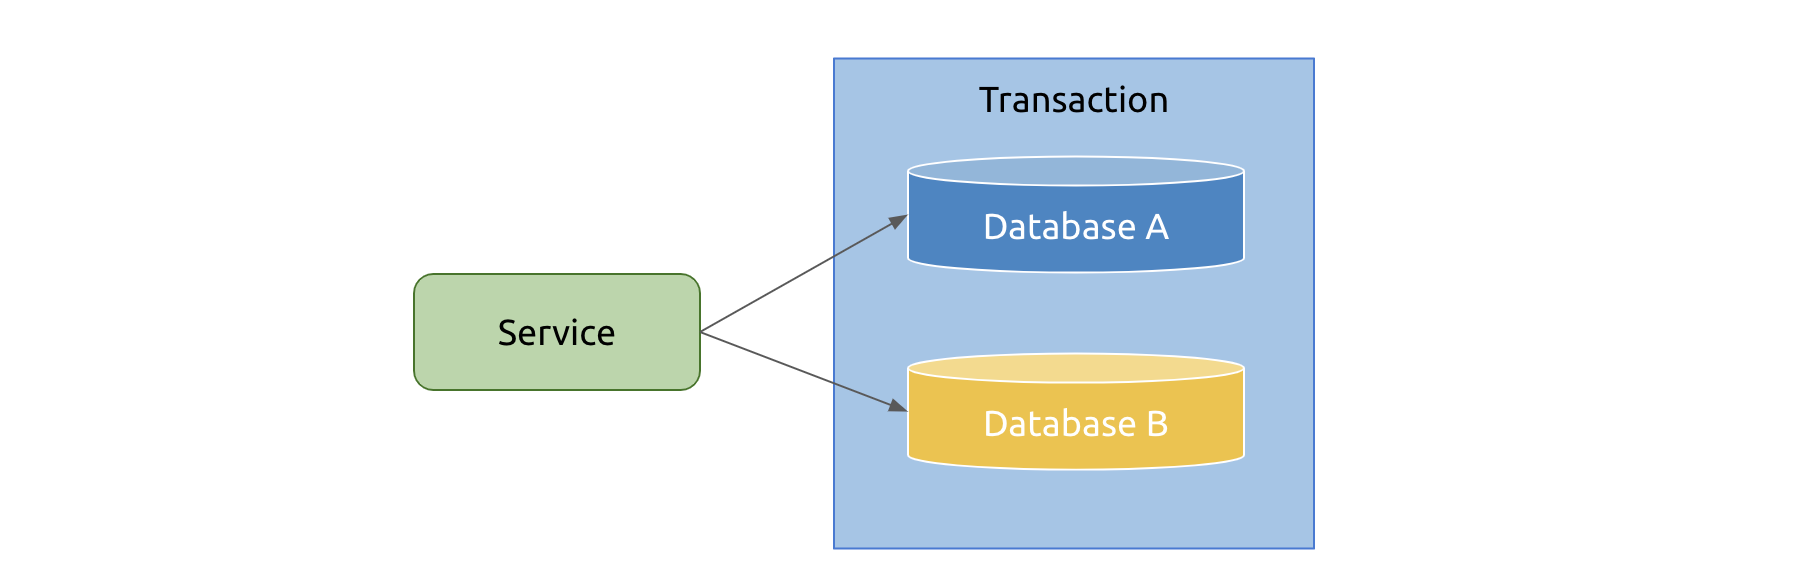 Cross-database transactions